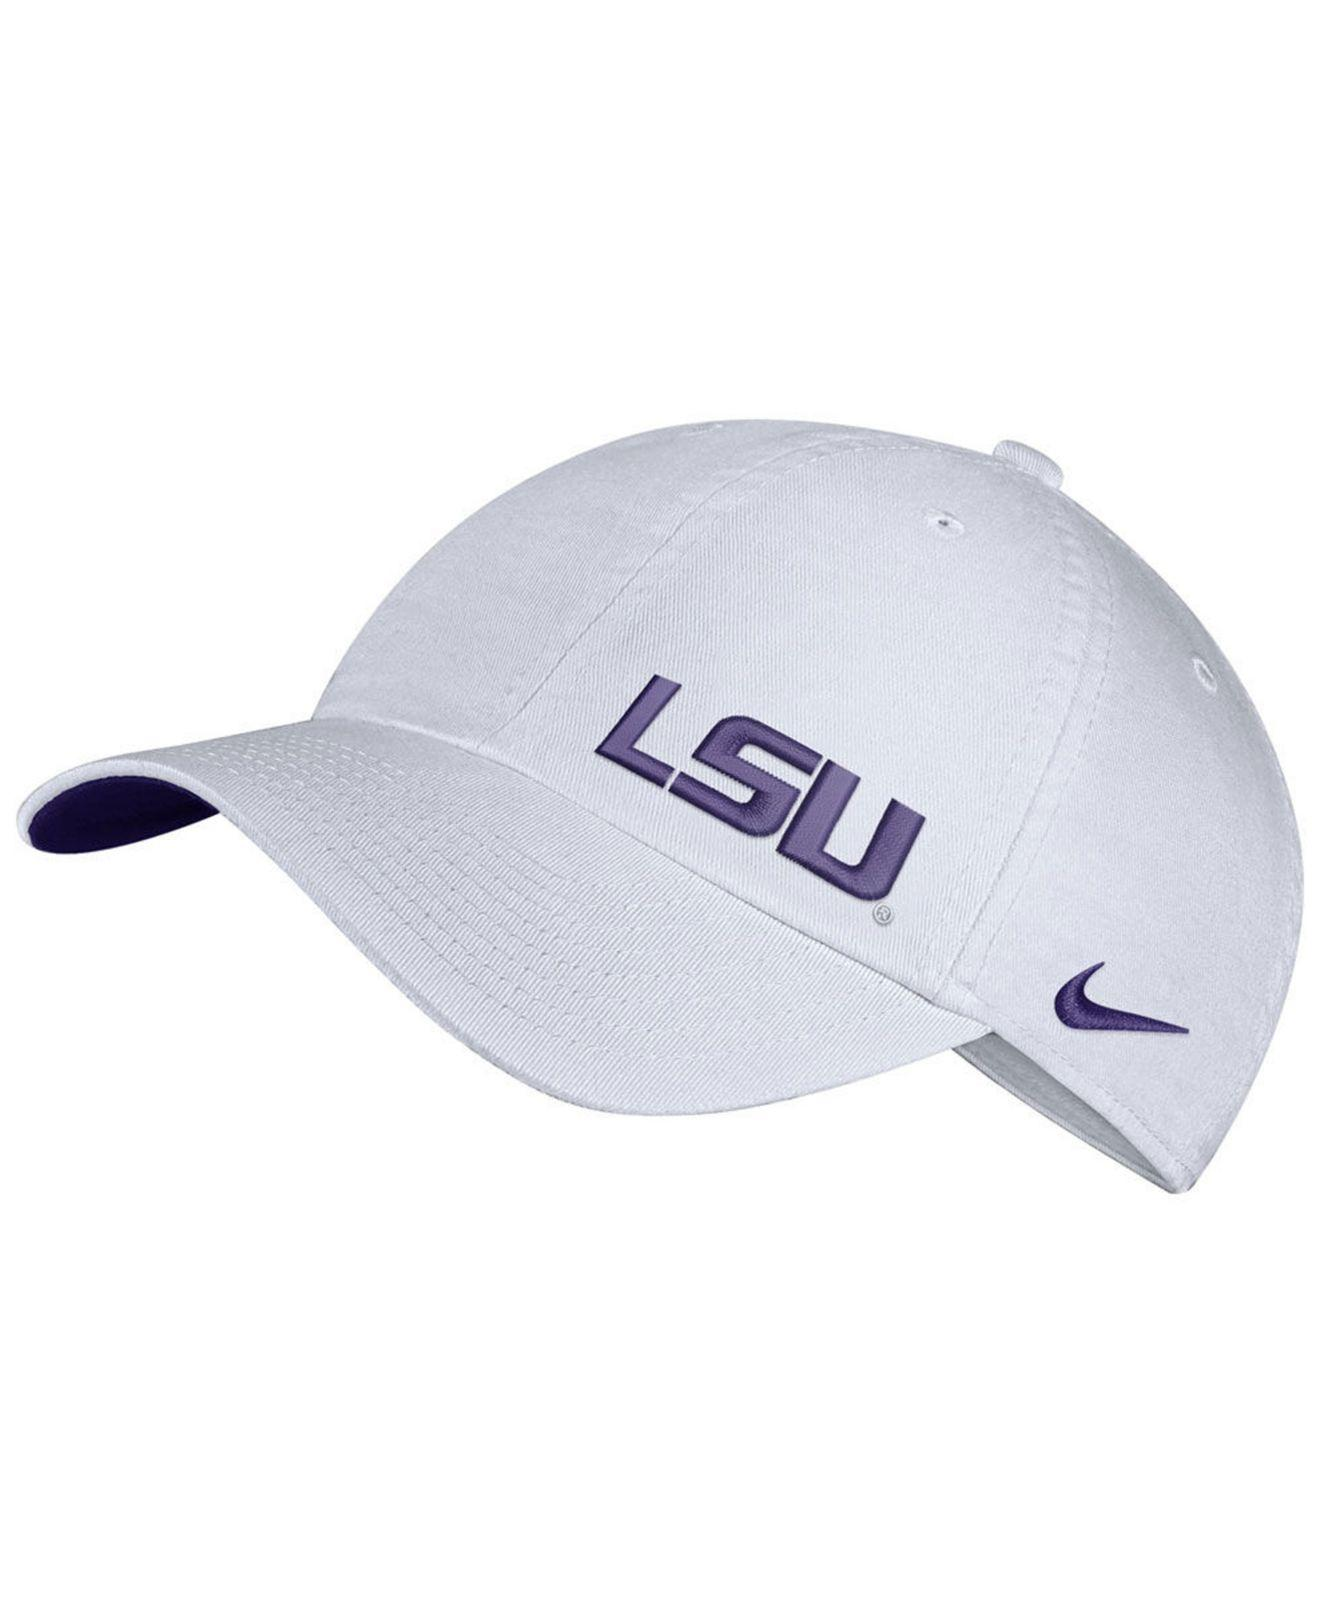 106374df3cdc43 Lyst - Nike Lsu Tigers H86 Offset Strapback Cap in White